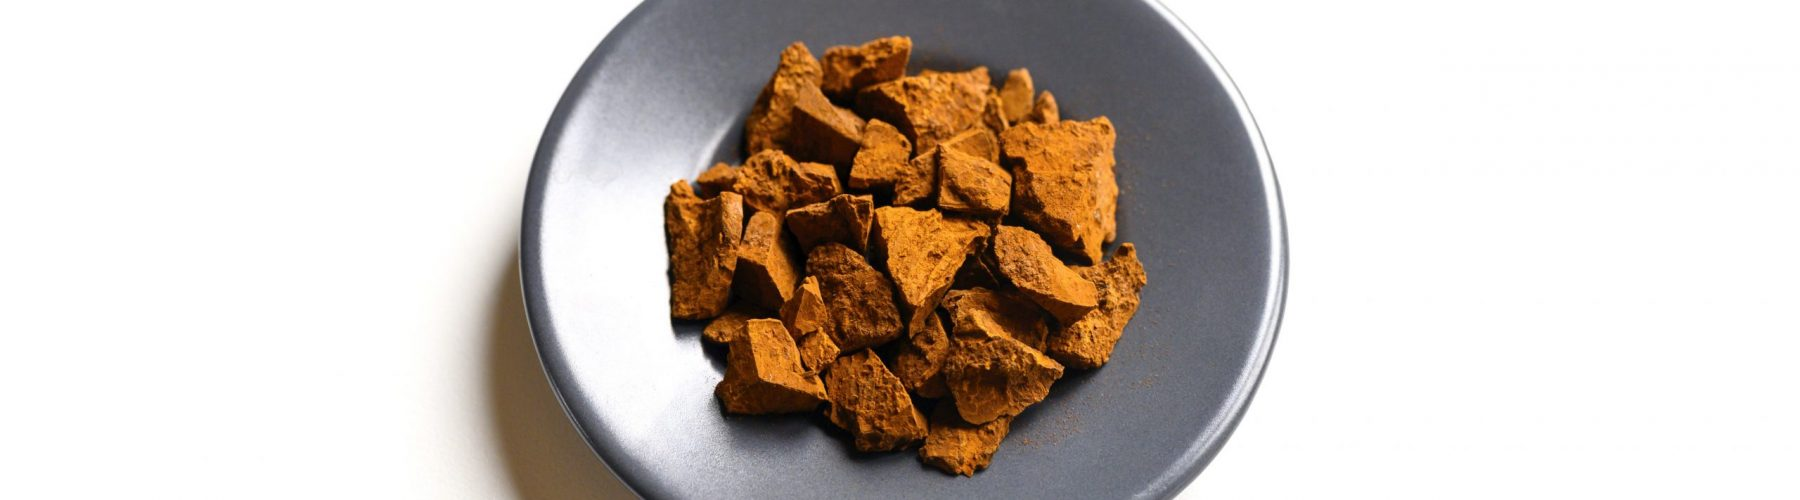 chaga mushroom. small dry chopped pieces of birch tree fungus chaga in a round plate isolated on a white background. concept of alternative natural medicine